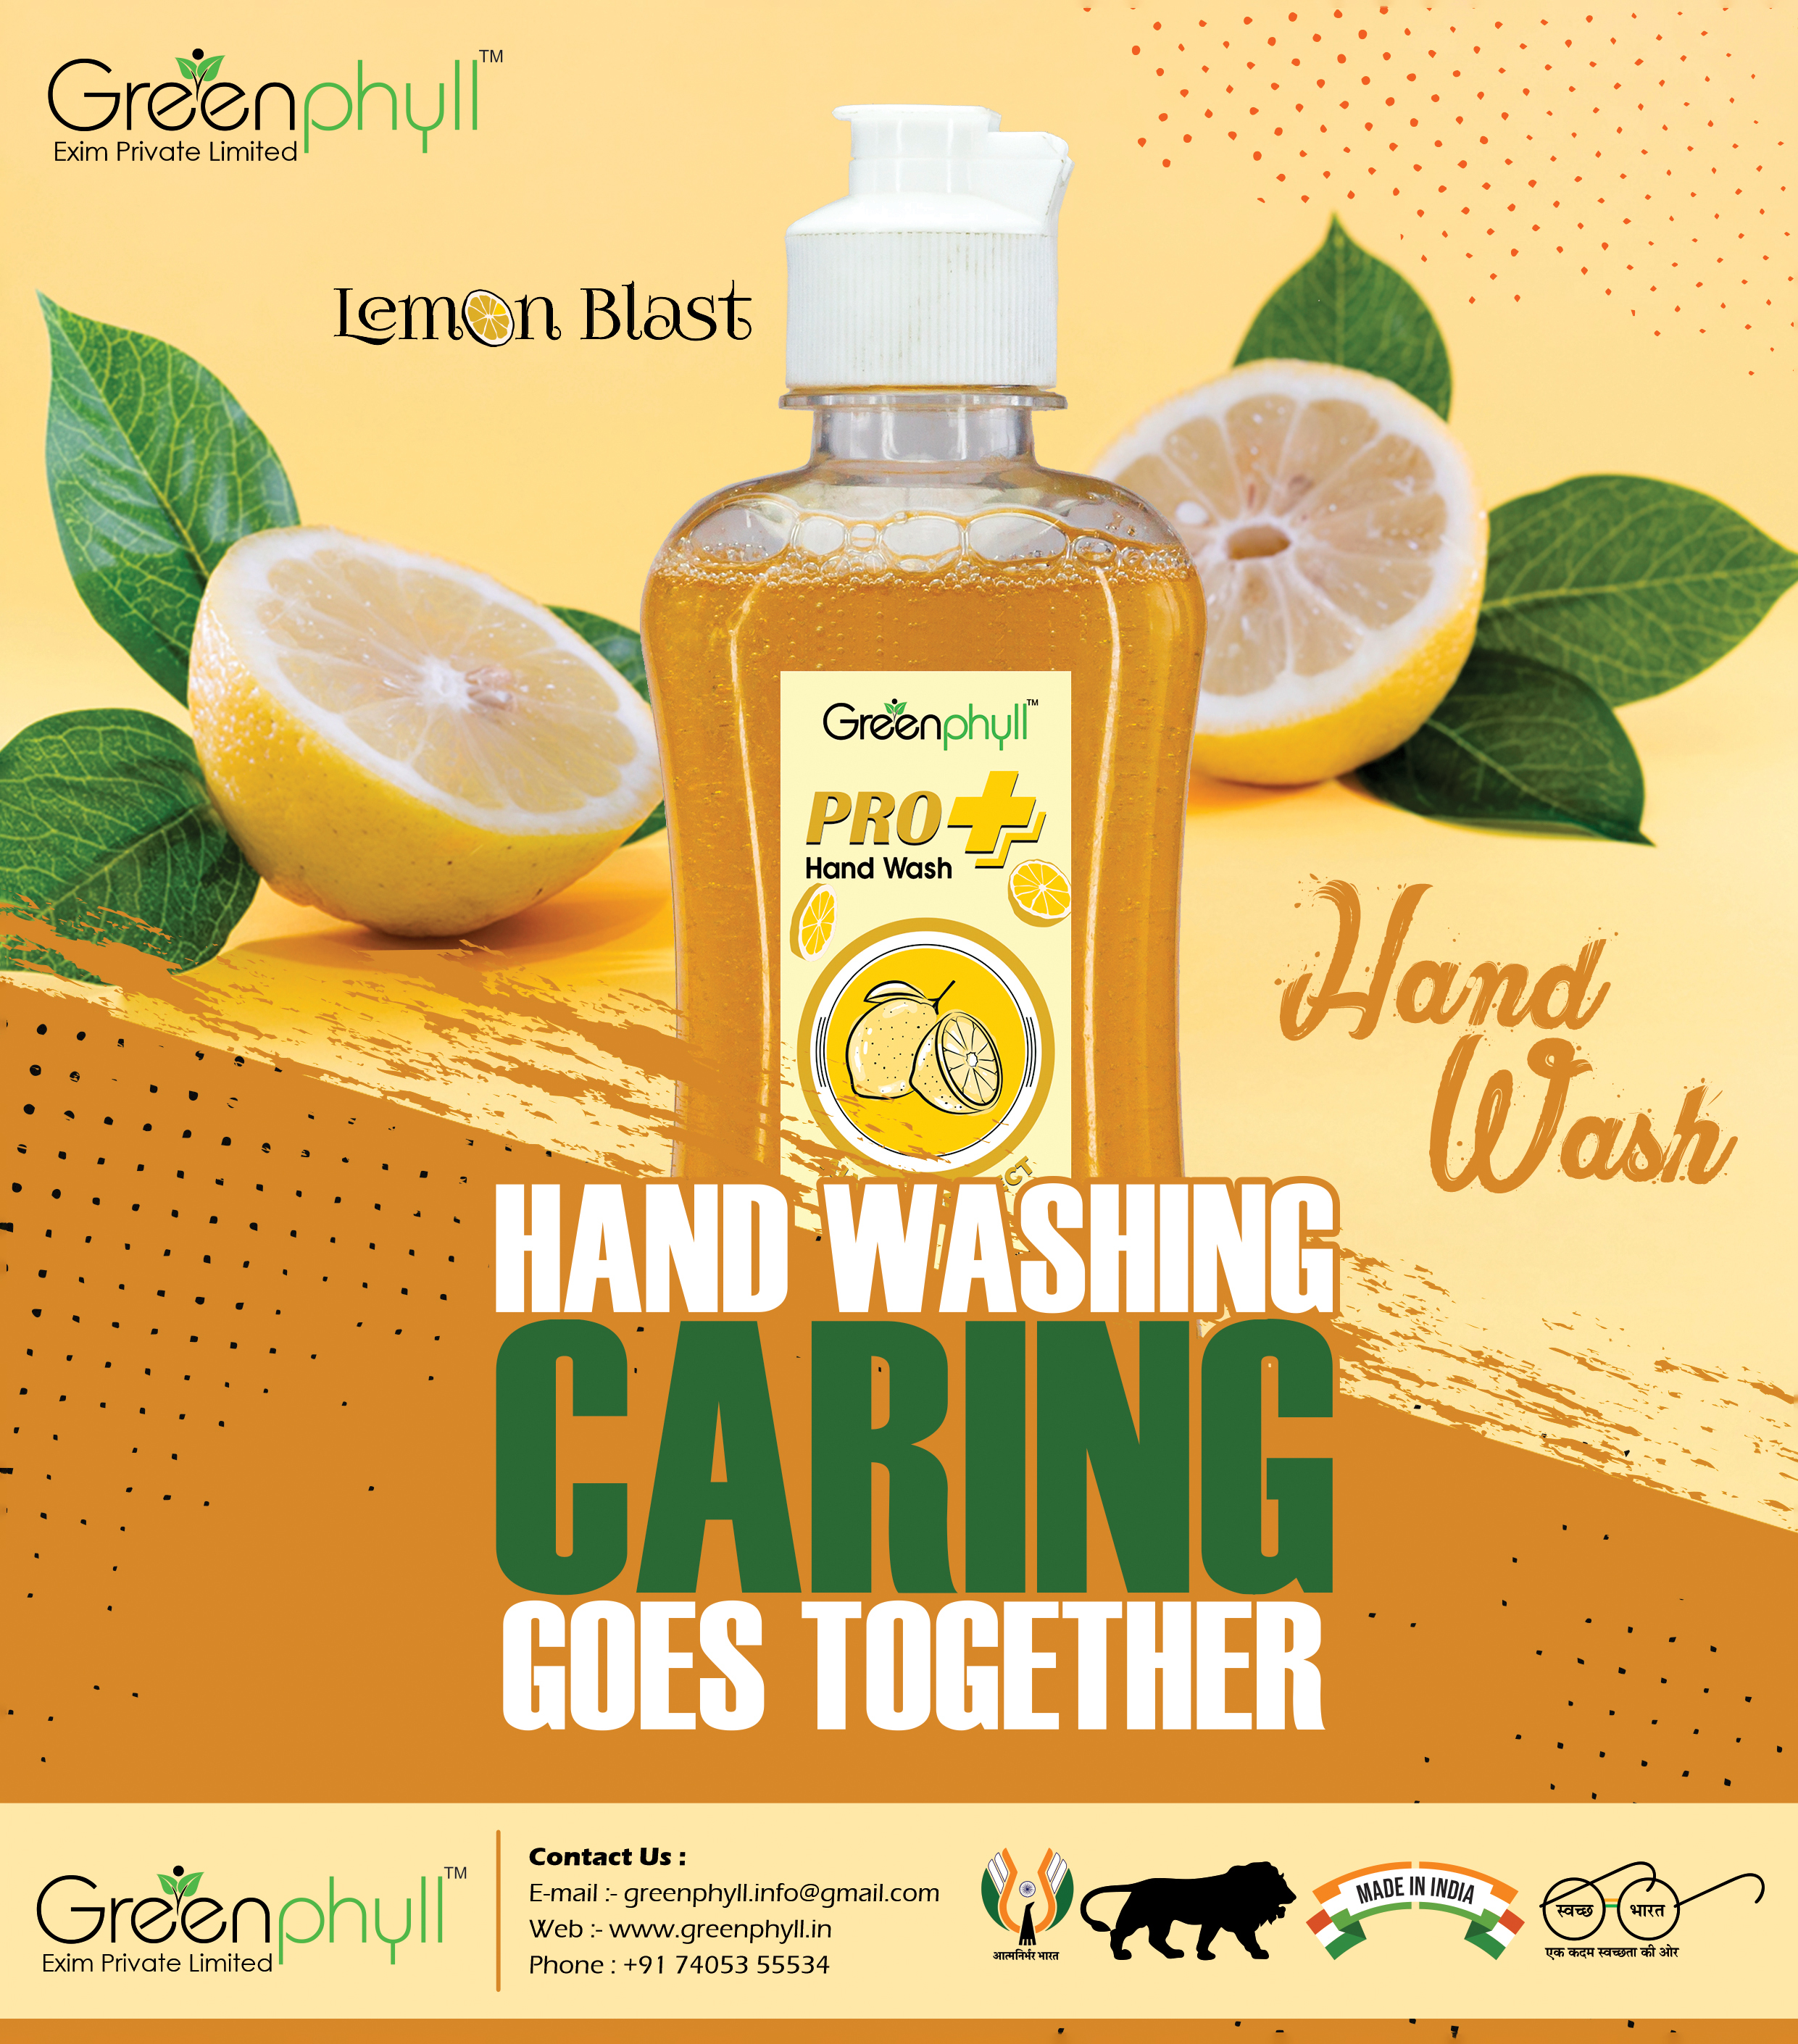 Greenphyll Lemon Blast Hand Wash